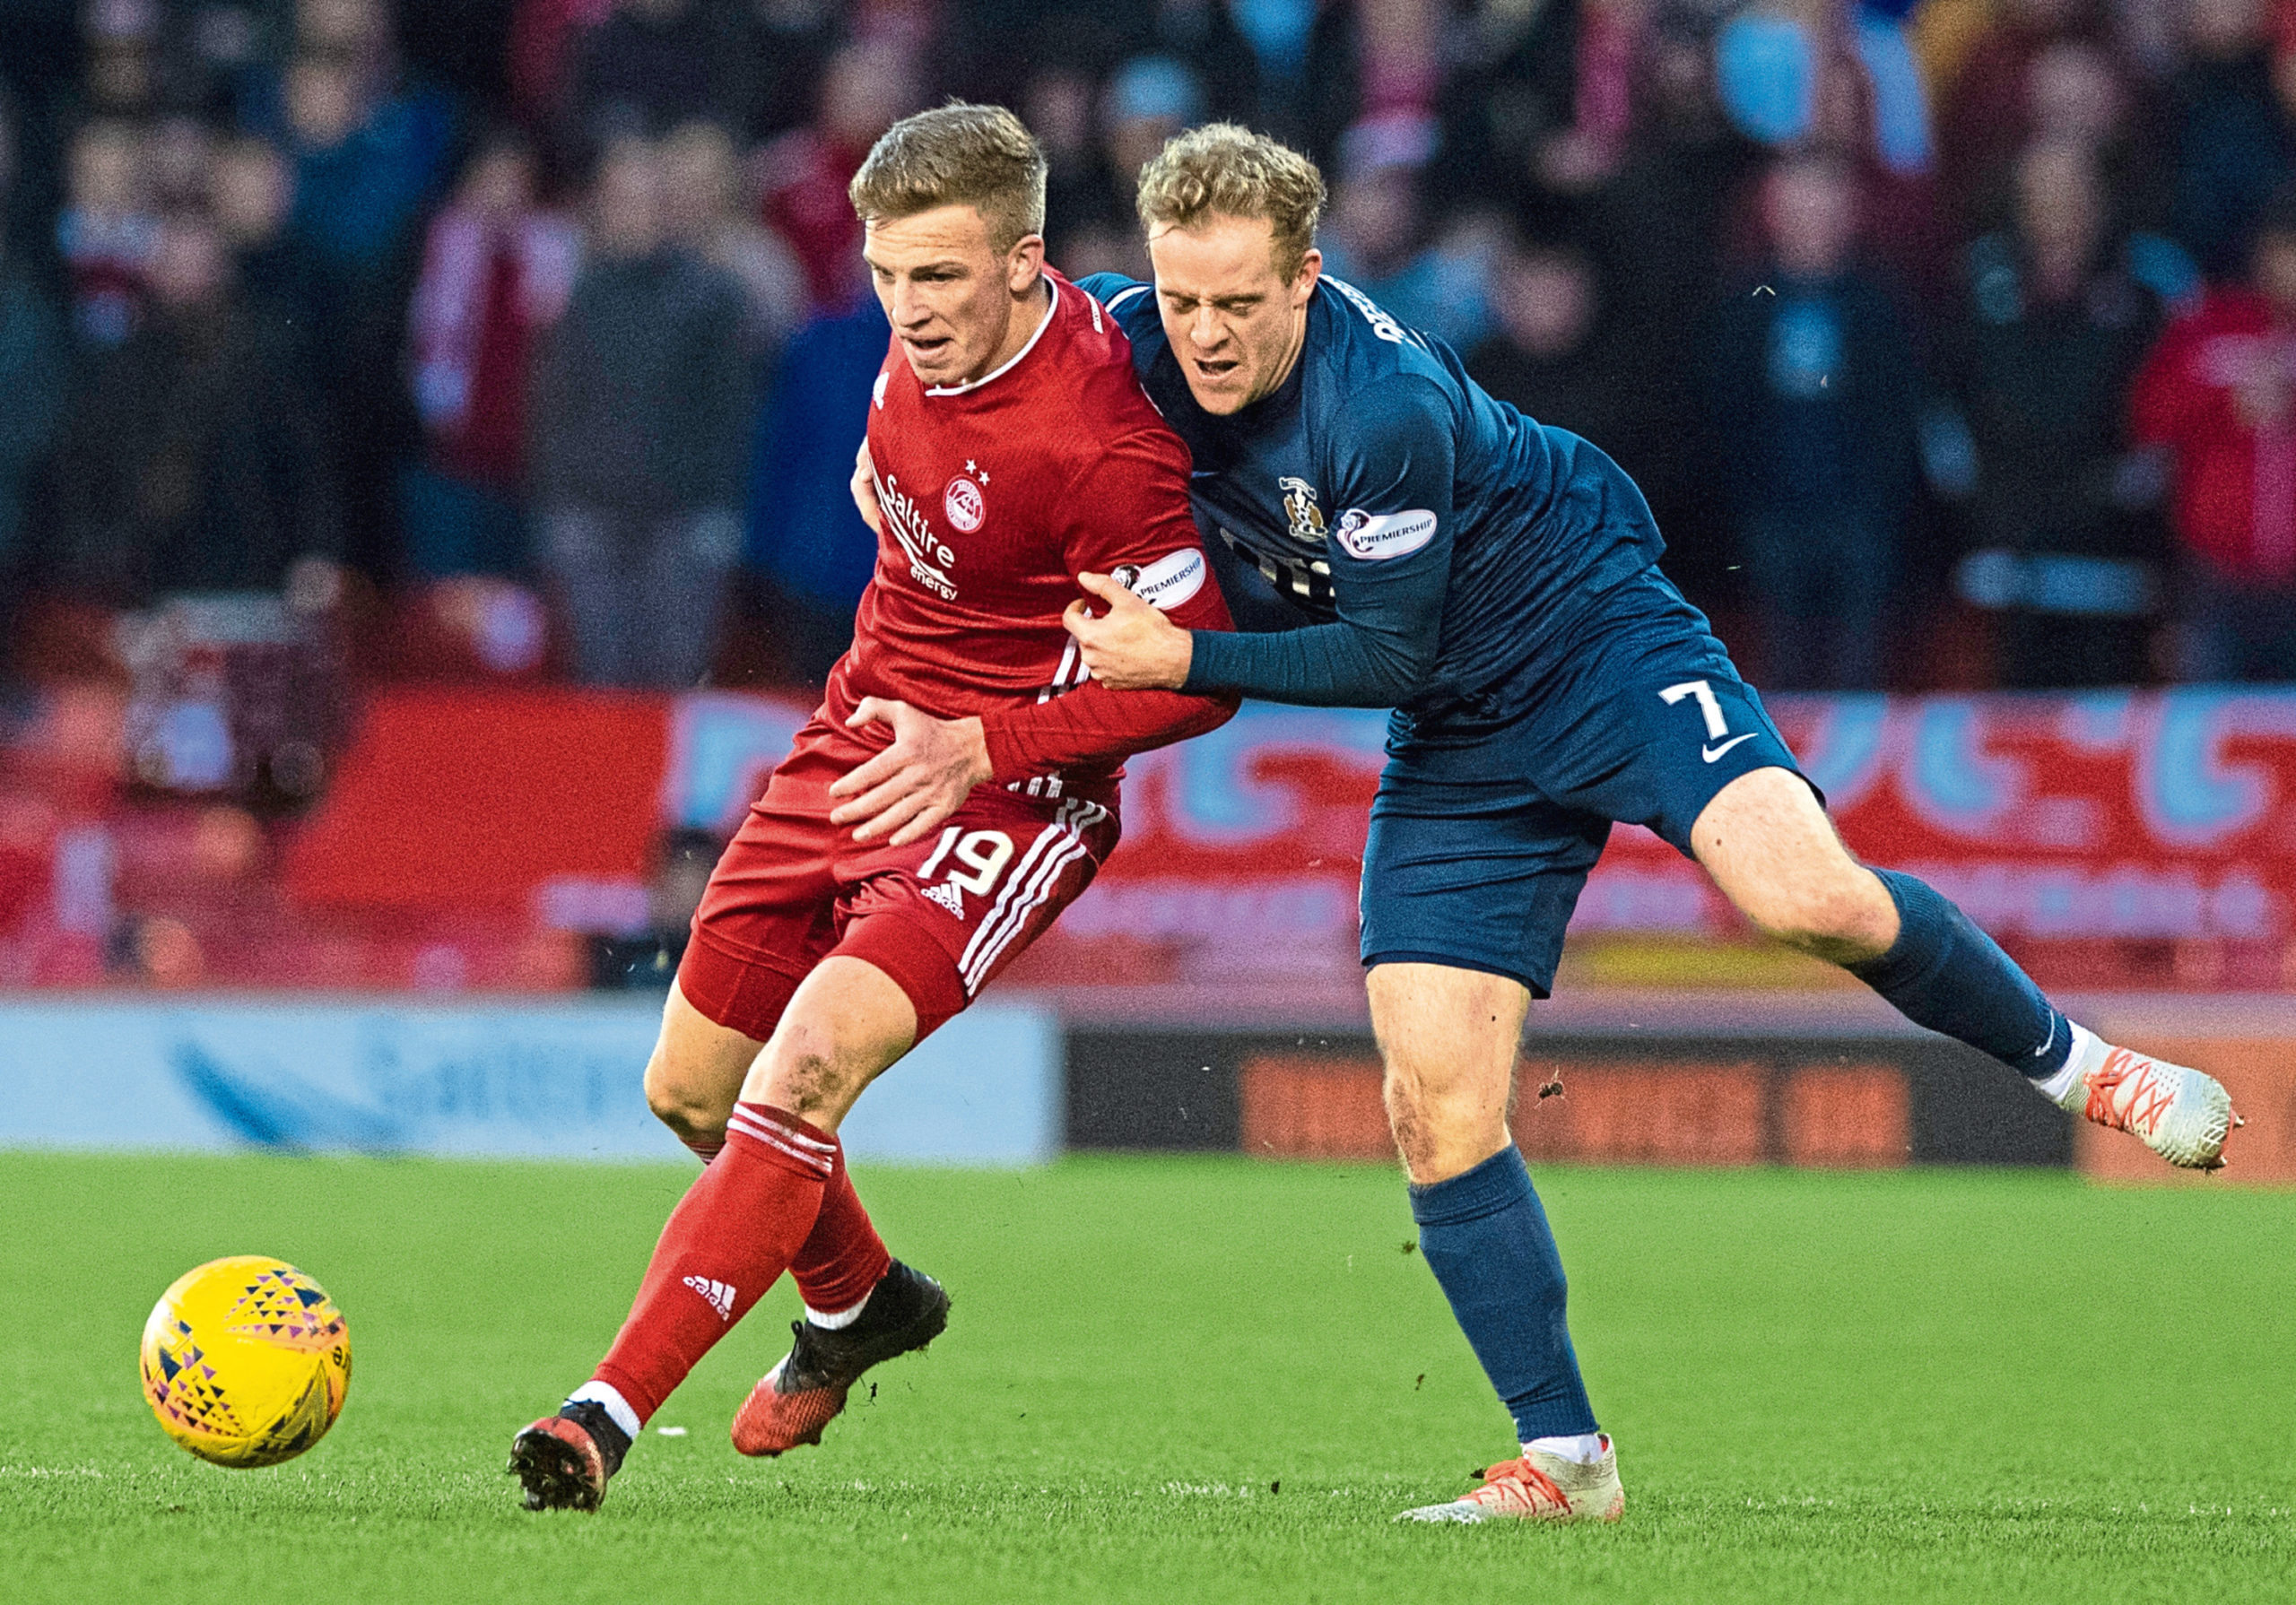 Lewis Ferguson in action against Kilmarnock during the first playing of Aberdeen and Killie's fifth-round tie.